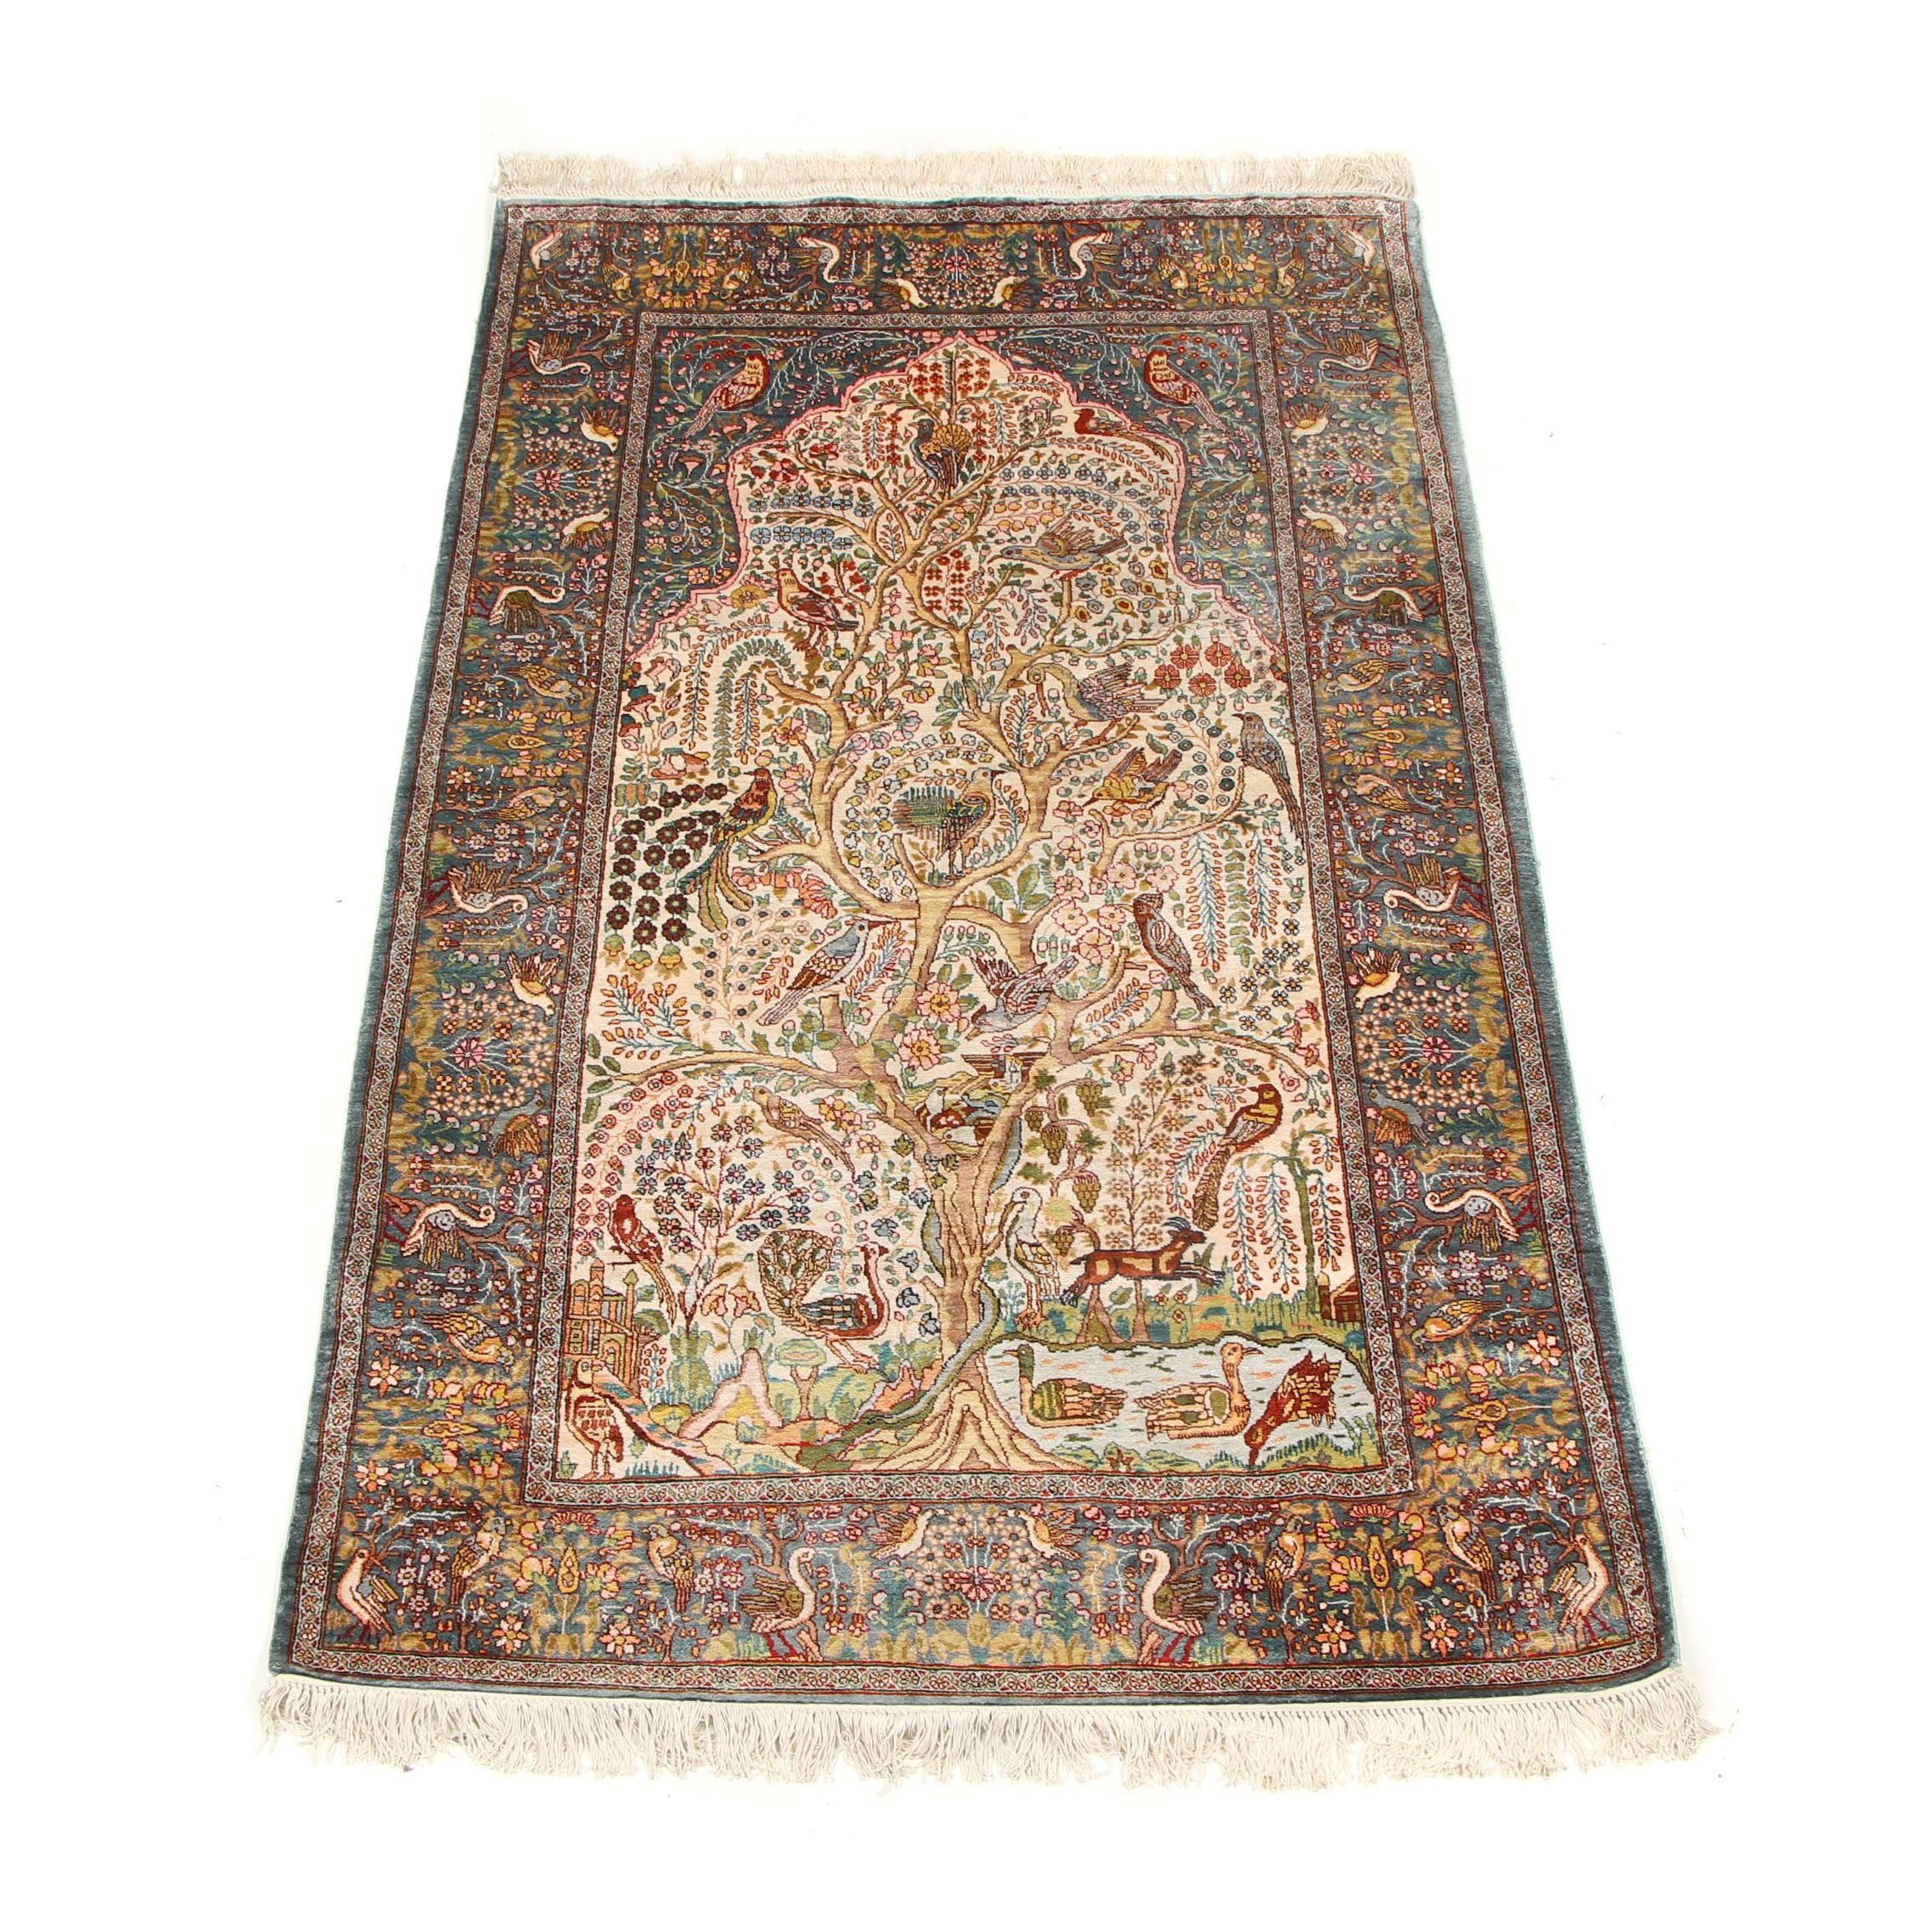 Hand-Knotted Indo-Persian Kerman Silk Prayer Rug